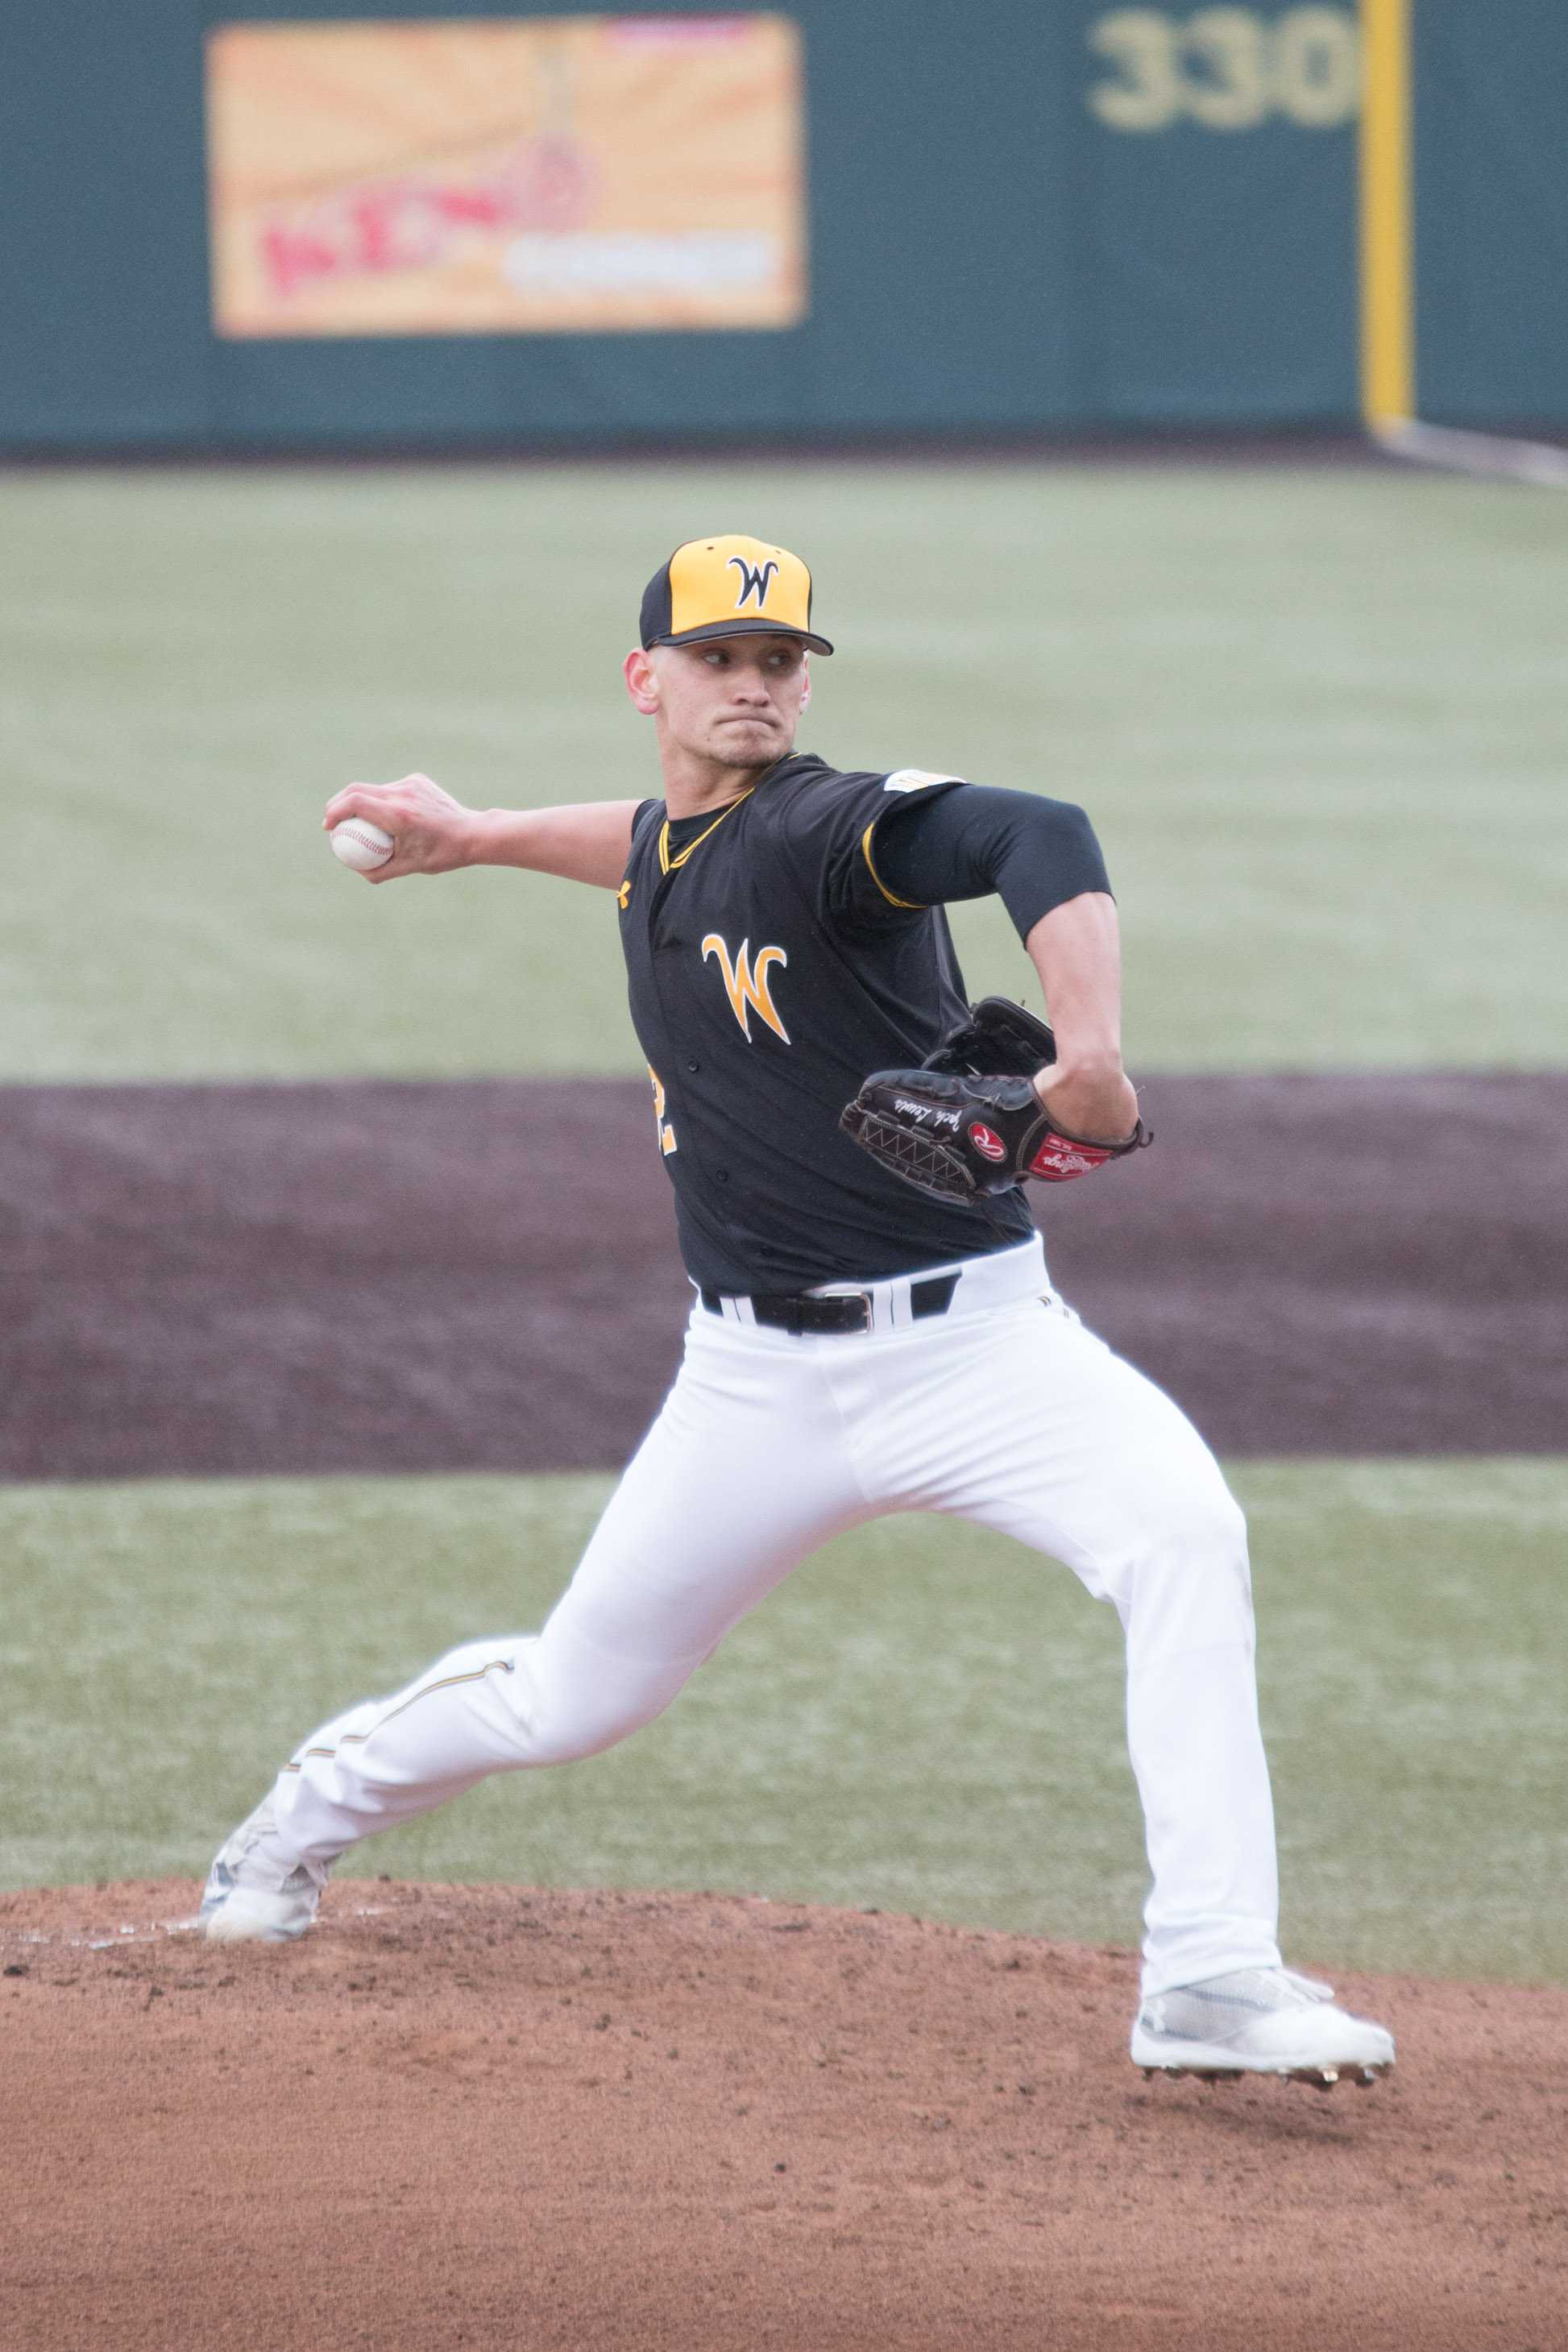 Senior Zach Lewis winds up a pitch against Texas Tech. Lewis pitched seven innings and a career high of 10 strikeouts Saturday afternoon.